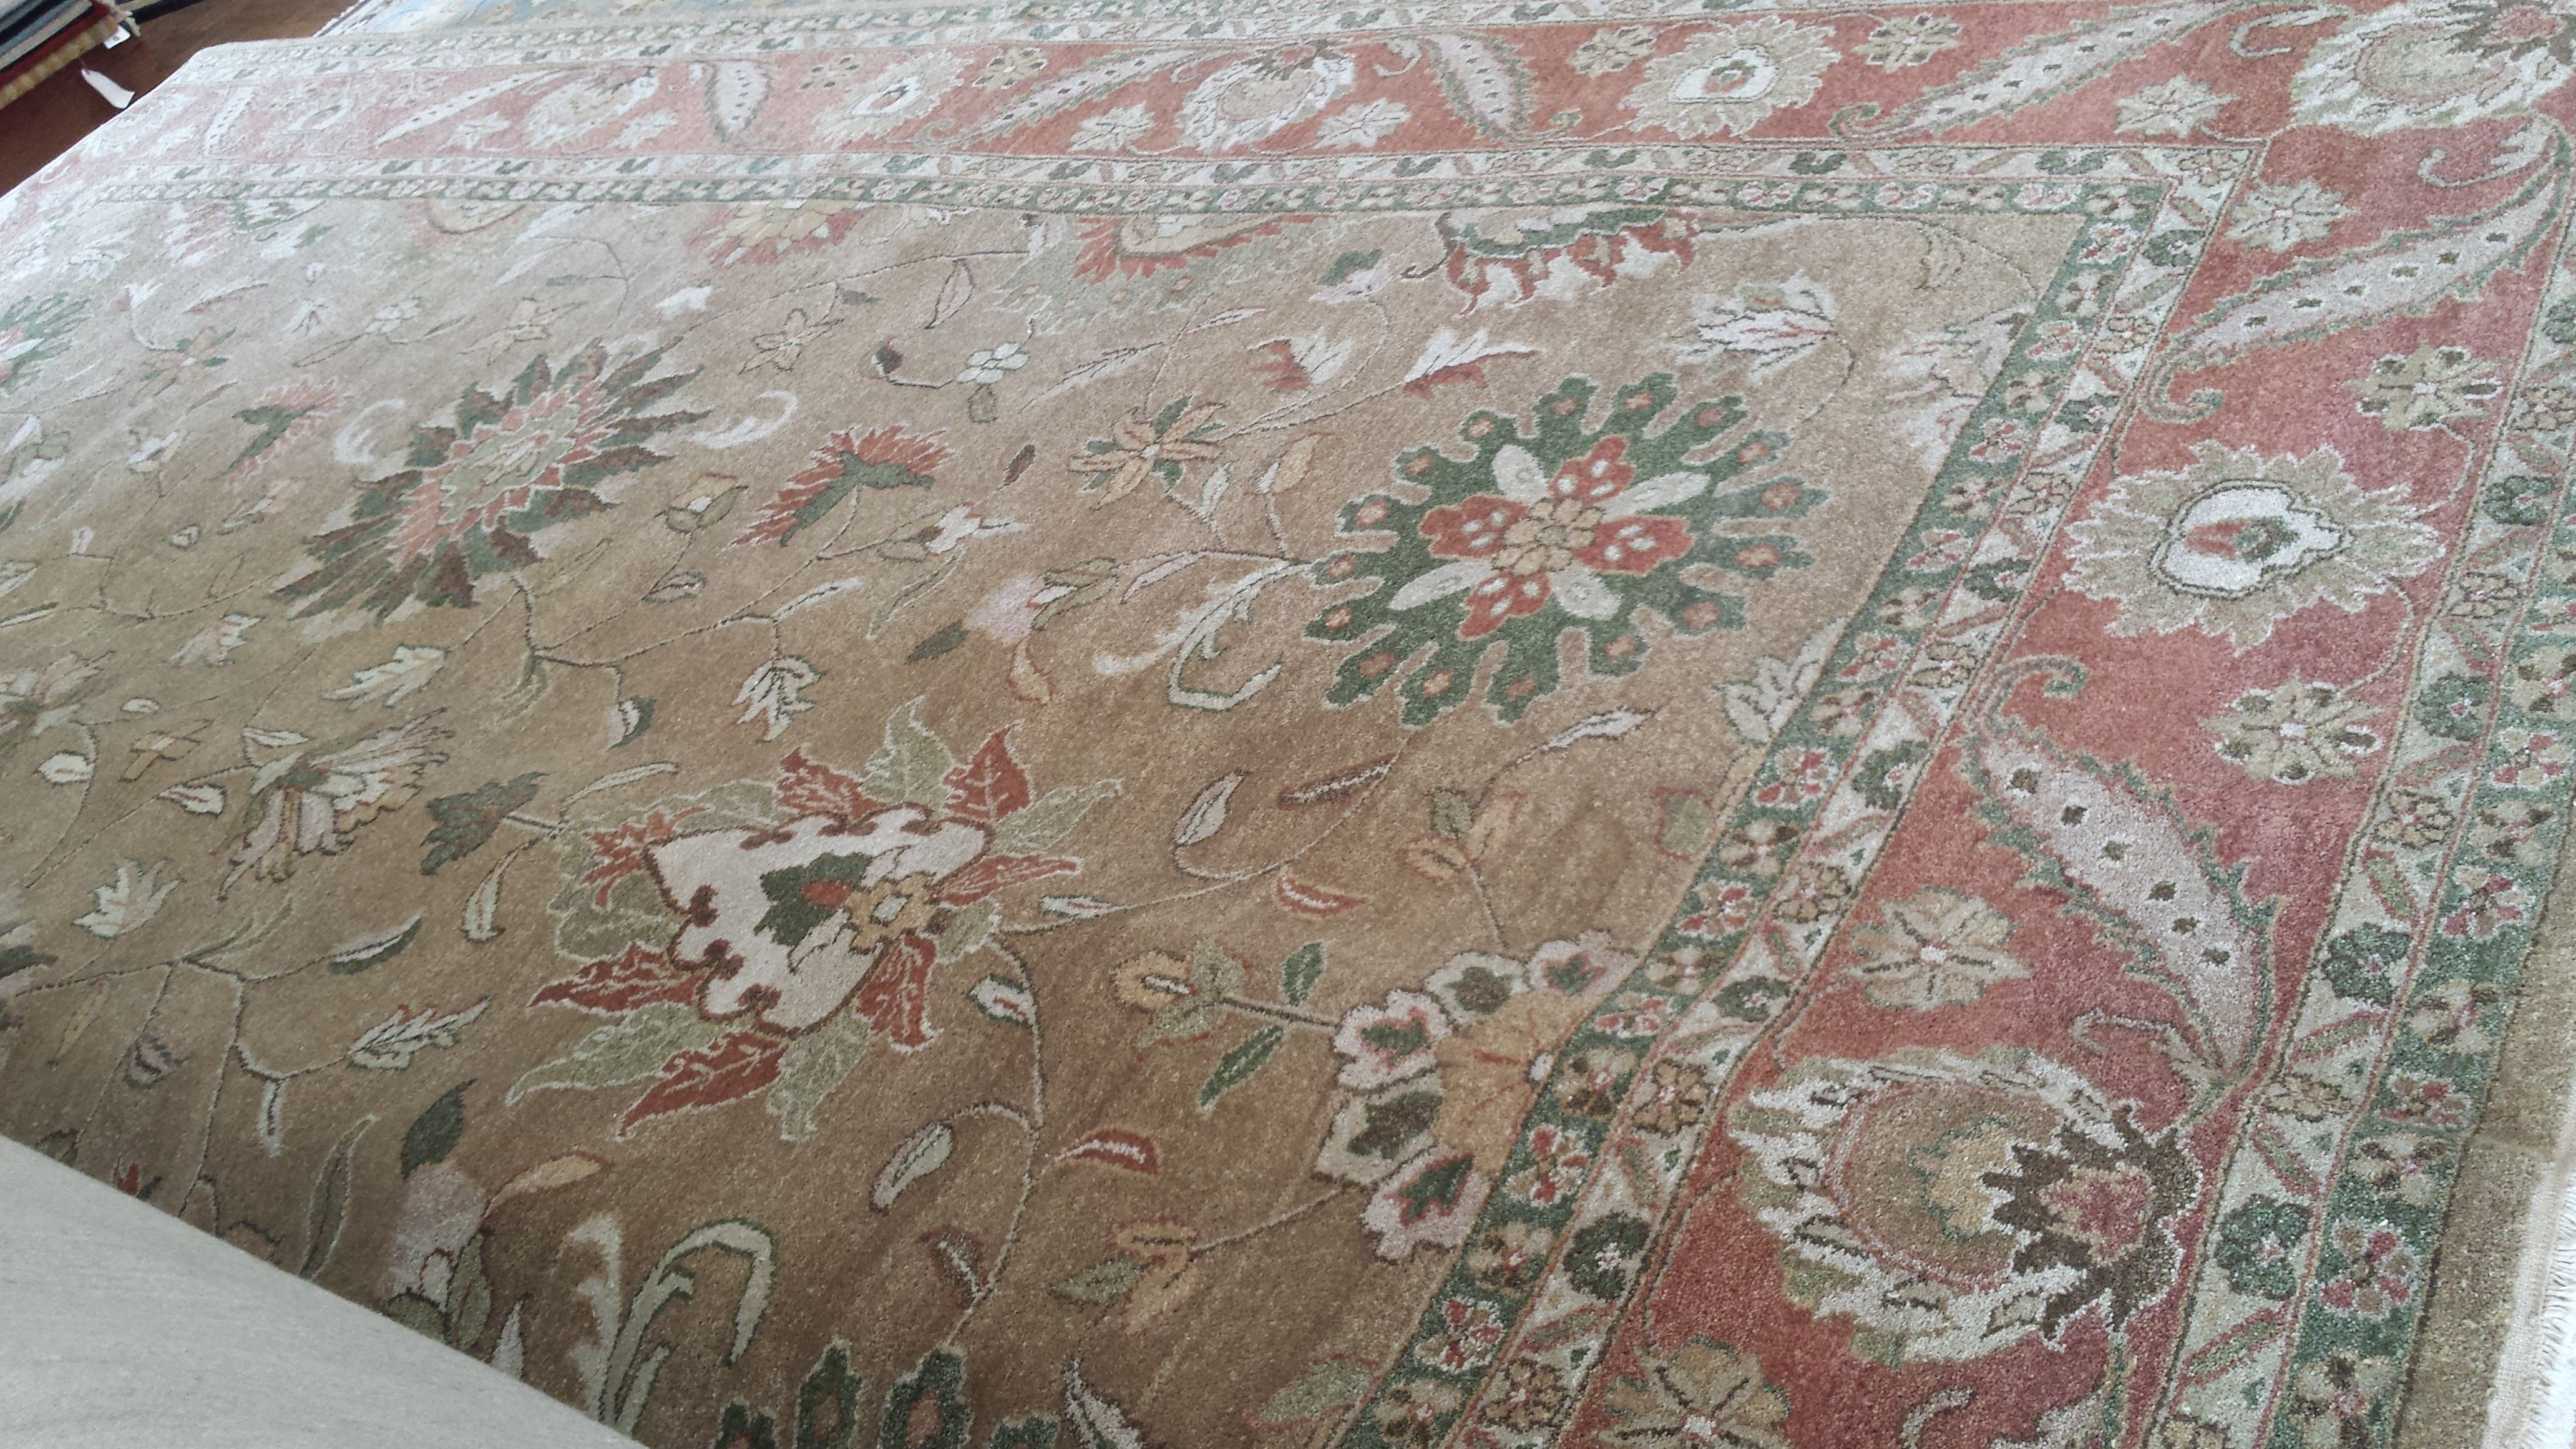 May Day Deal! 💃🏼 Vintage Oushak Oriental Rug  10.5 x 14.3  $2975 reduce from $6950 Call 205-870-4444 or drop by if it's for you!  Please share! 😇 #nilipourorientalrugs #MayDayDeal #familybusiness #since1972 #fullservice #shoplocal #happycustomer #artyoucantreadon #orientalrug #rug #arearug #naturalfibers #wholesaleprices #directimporting #affordableluxury #functionalrug #practicalrug #appeal #qualityrug #investment #conversationpiece #Lifestyle #rugcleaning #orientalrugcleaning #arearugcleani